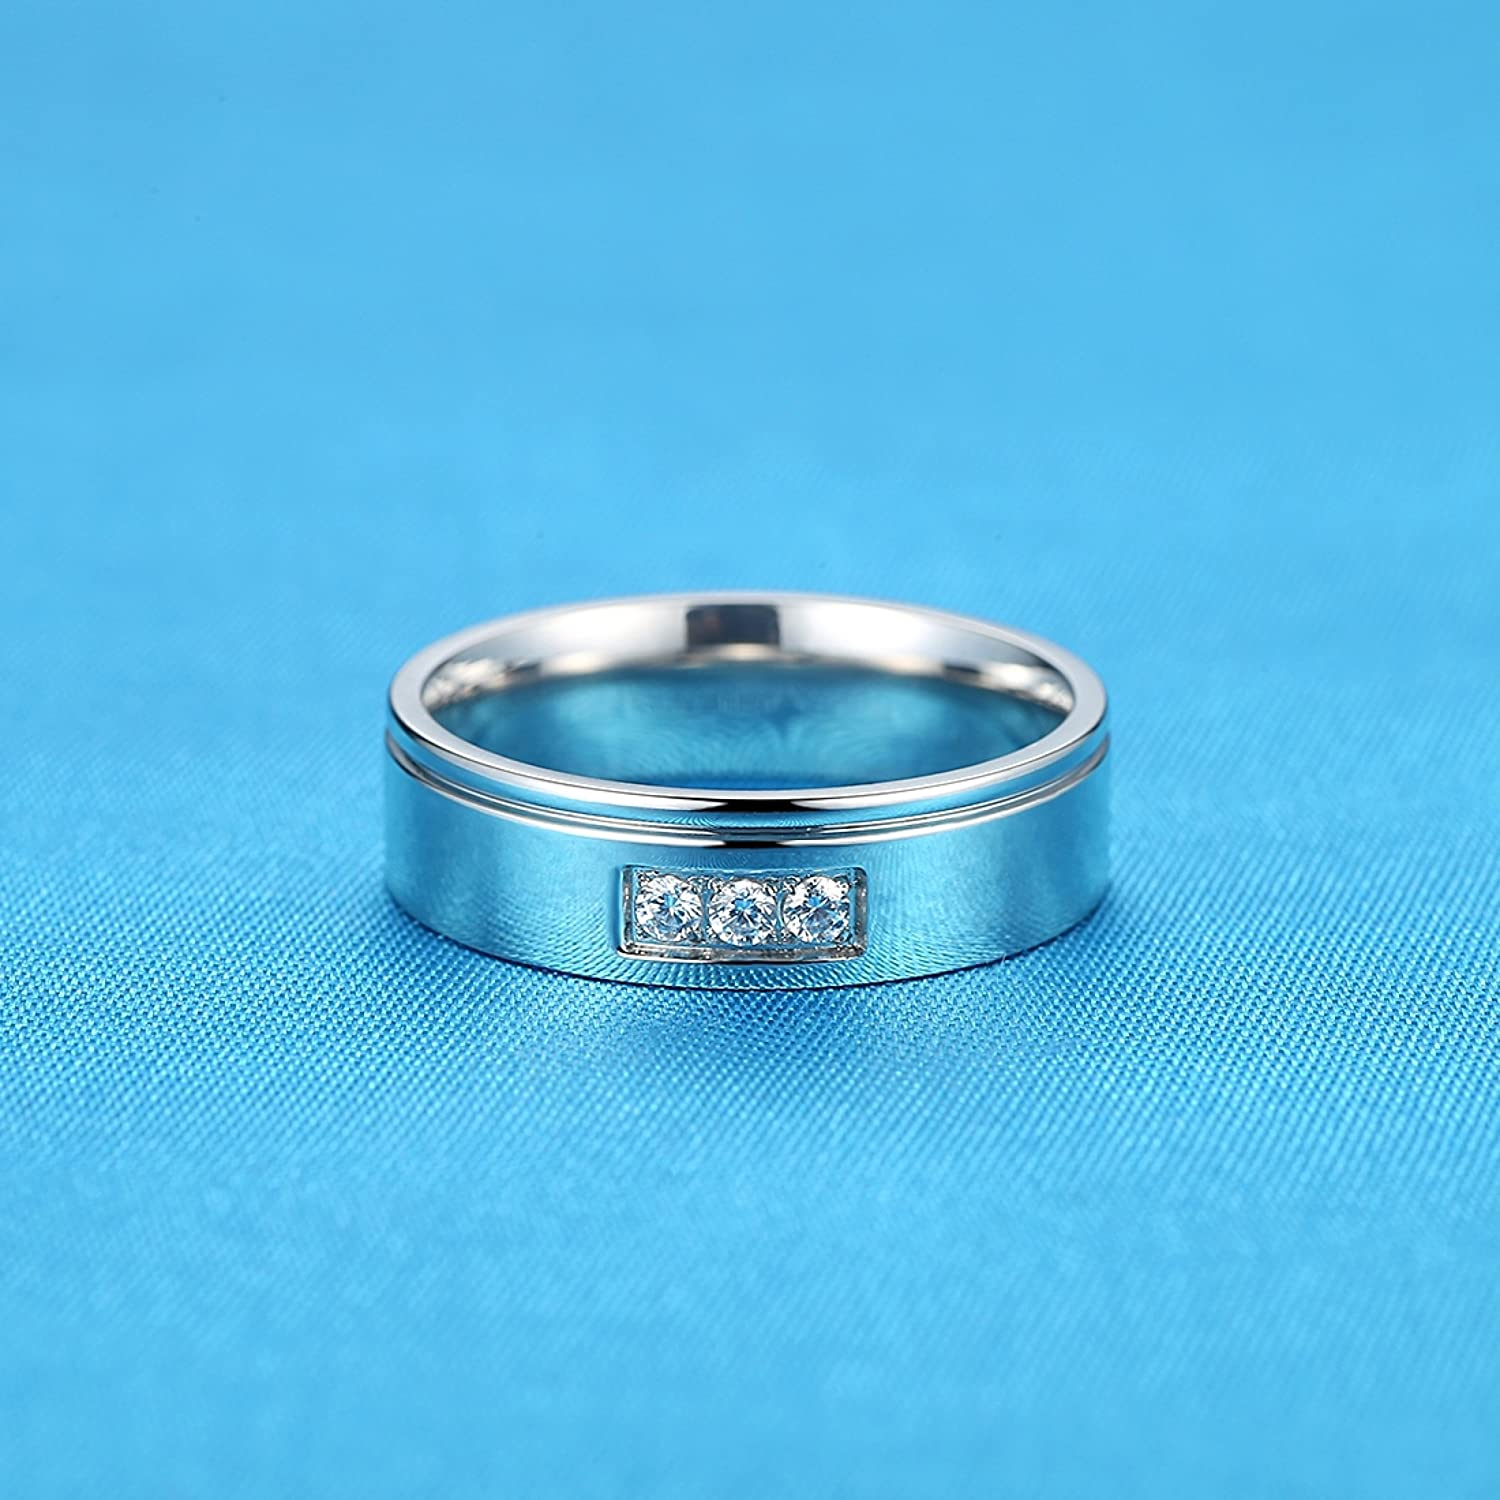 Unisex LineAve Stainless Steel CZ Wedding Band Ring Womens Mens Comfort Fit